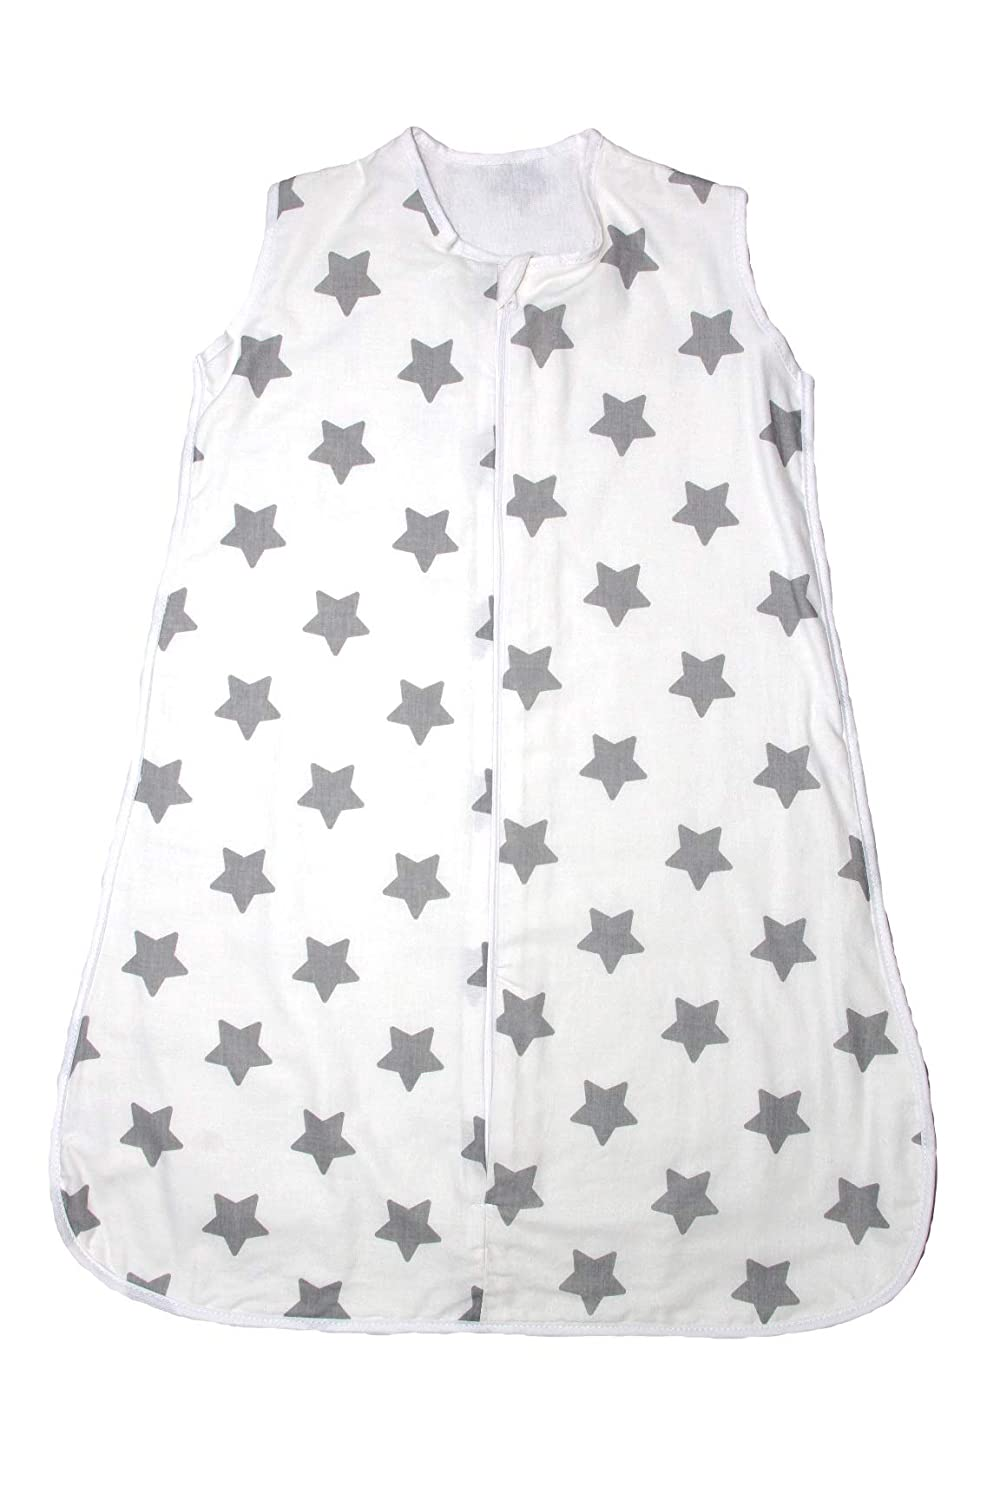 Baby's Comfort Summer/Winter Sleeping Bag 100% Cotton All Sizes/All togs (0-6 Months (1 tog) Summer, 4) a Baby's Comfort